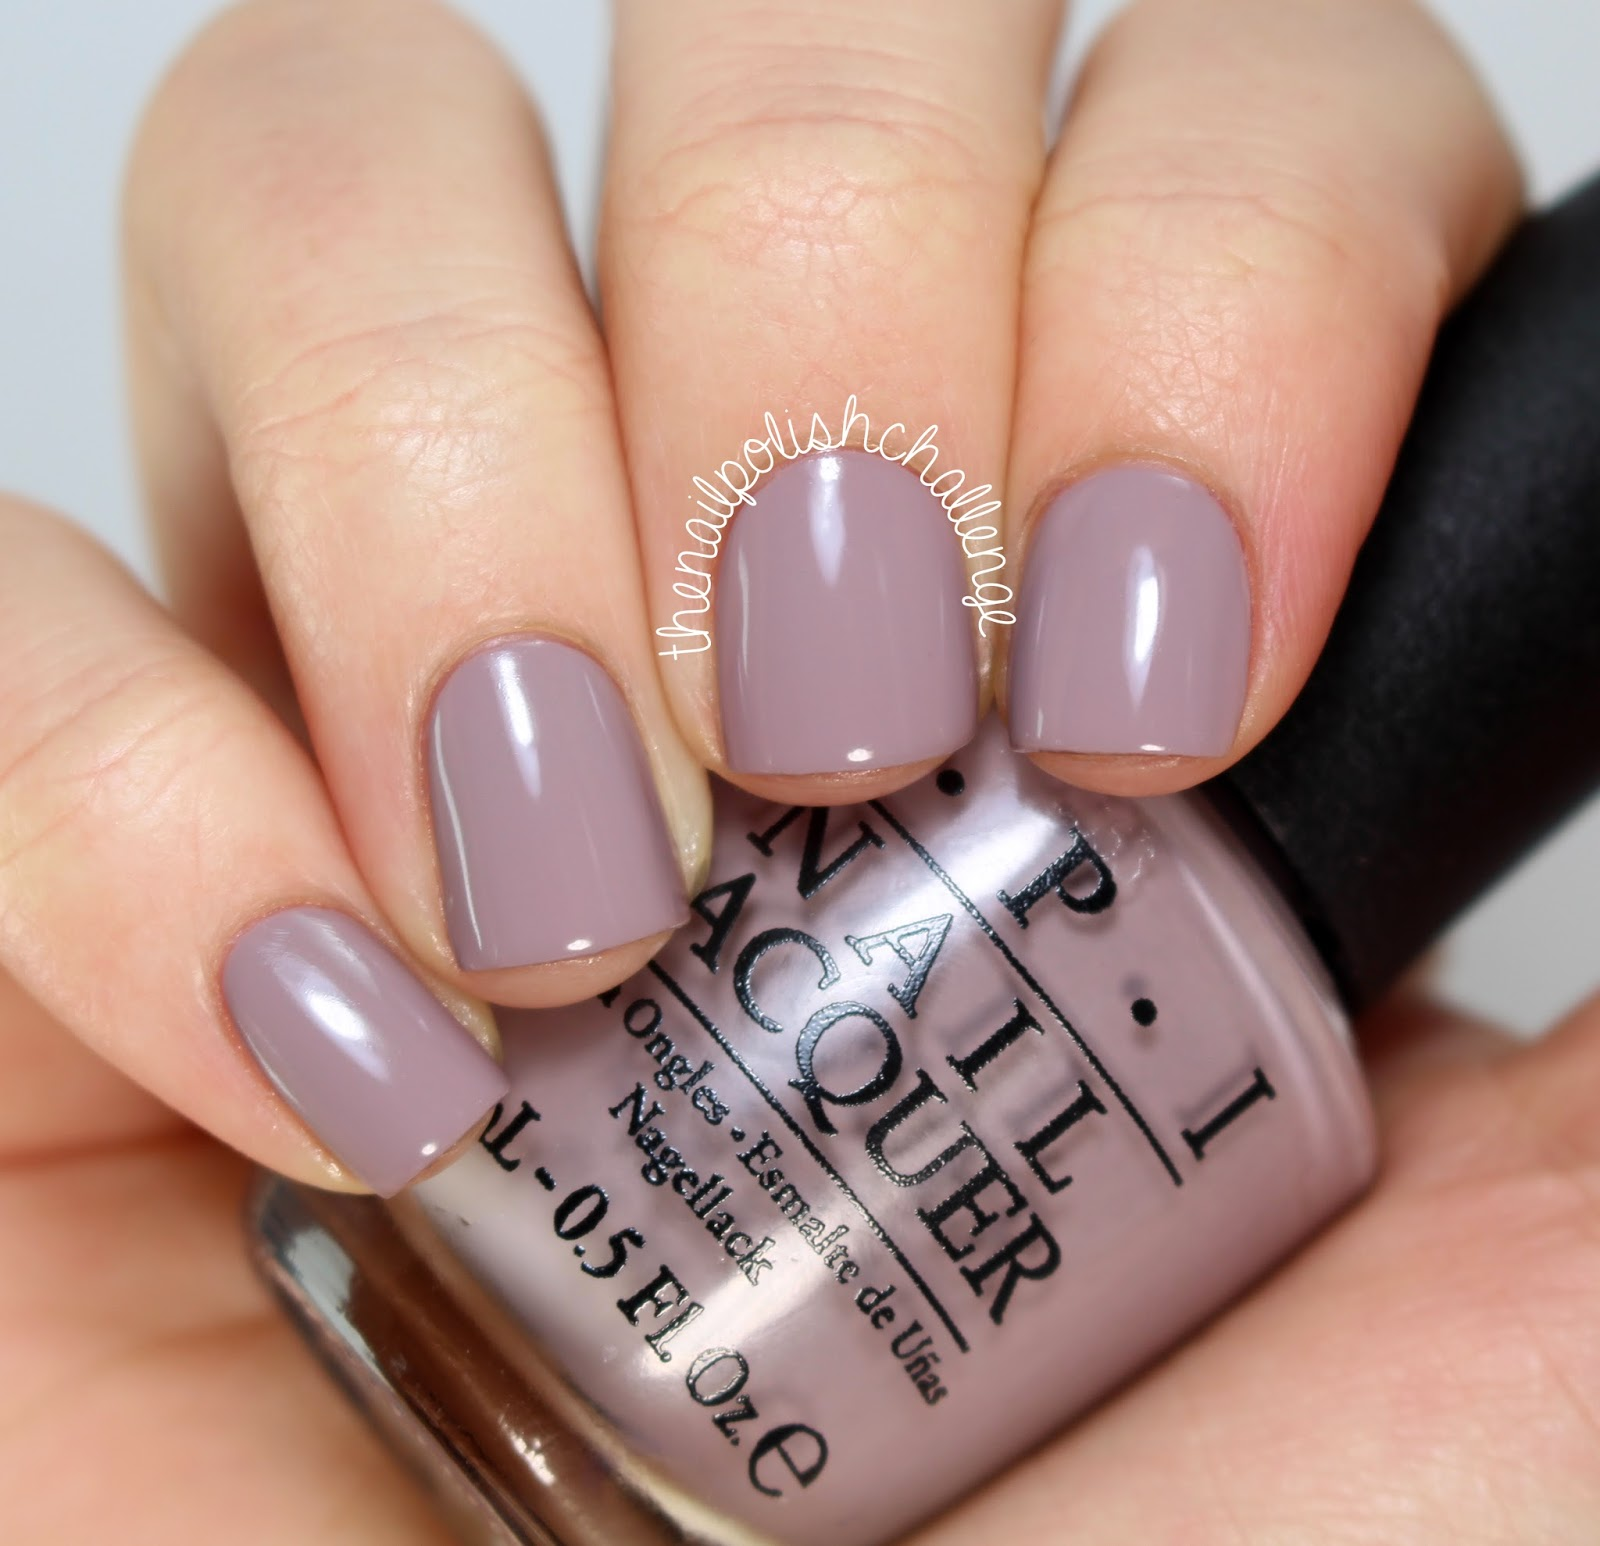 HB Beauty Bar: OPI Brazil 2014 Collection Swatches | The Nail Polish ...